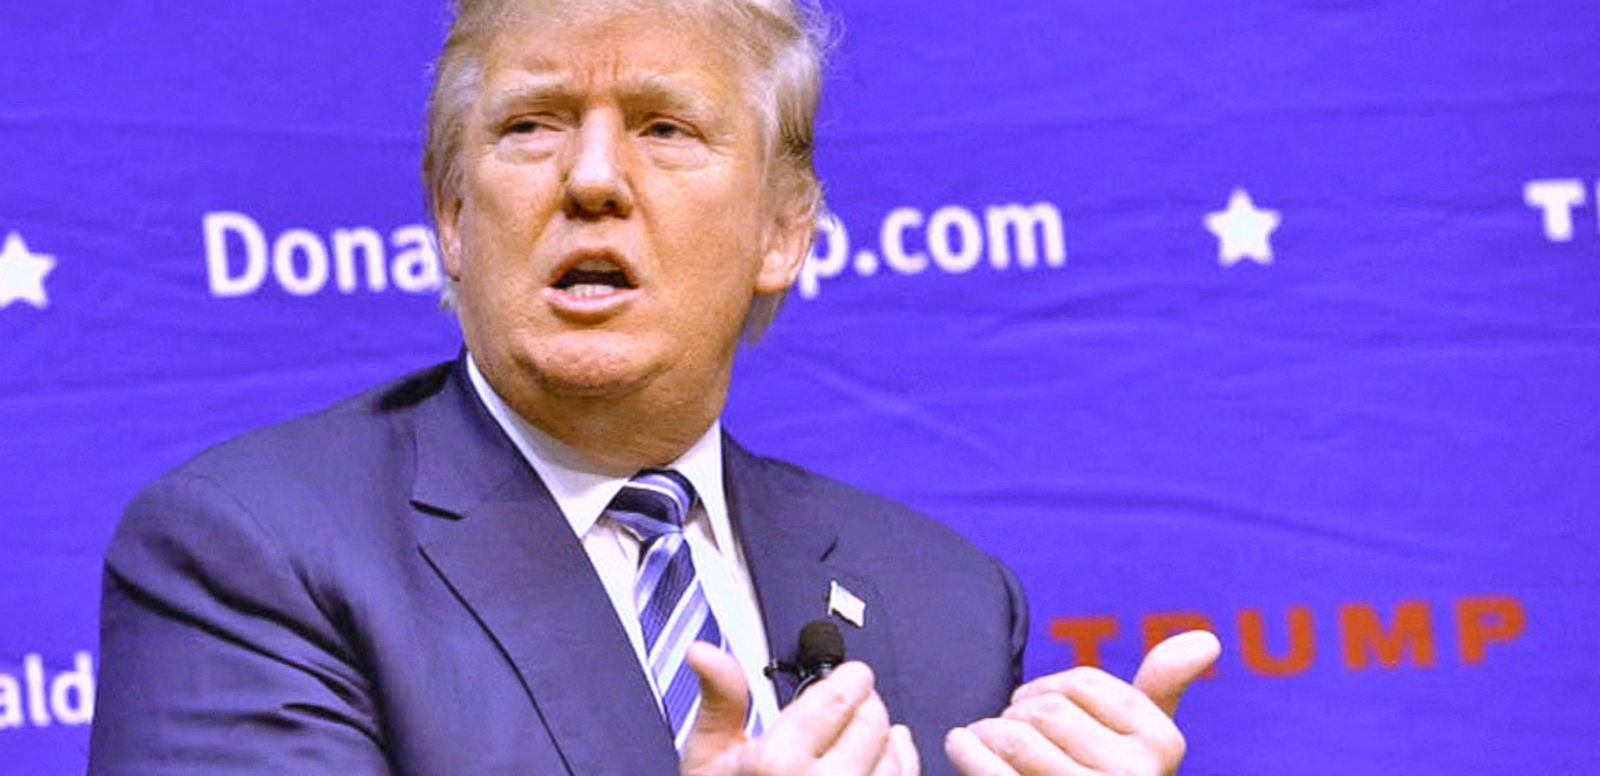 VIDEO: Donald Trump on Death of Justice Scalia, 2016 Presidential Race